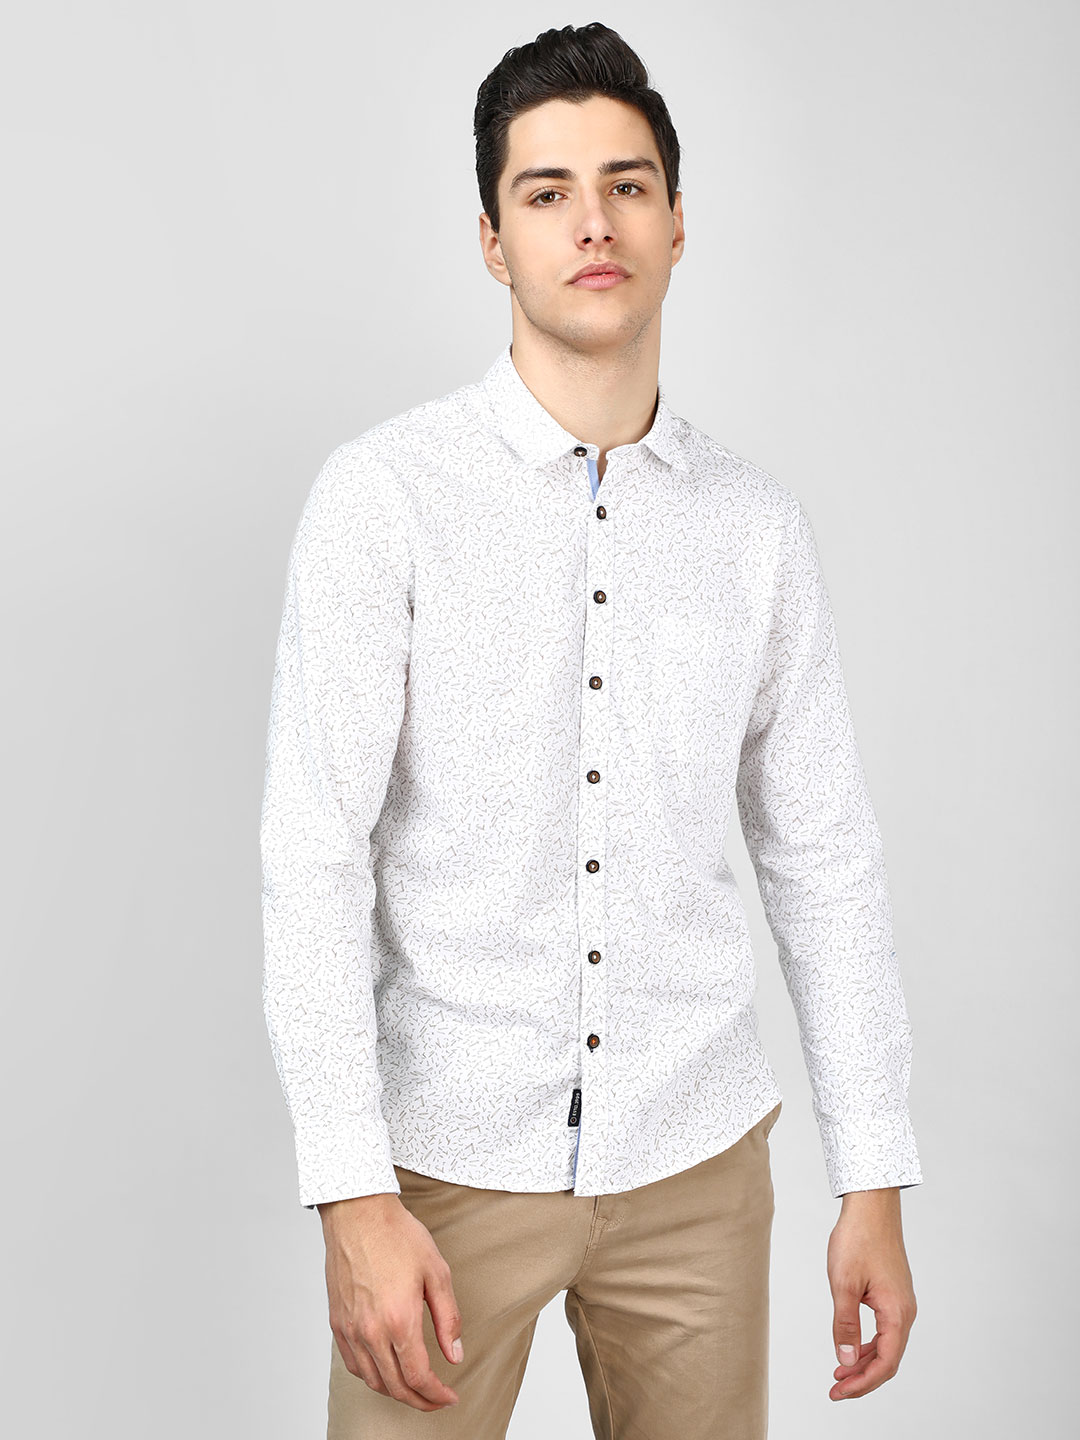 SCULLERS White All Over Print Oxford Shirt 1